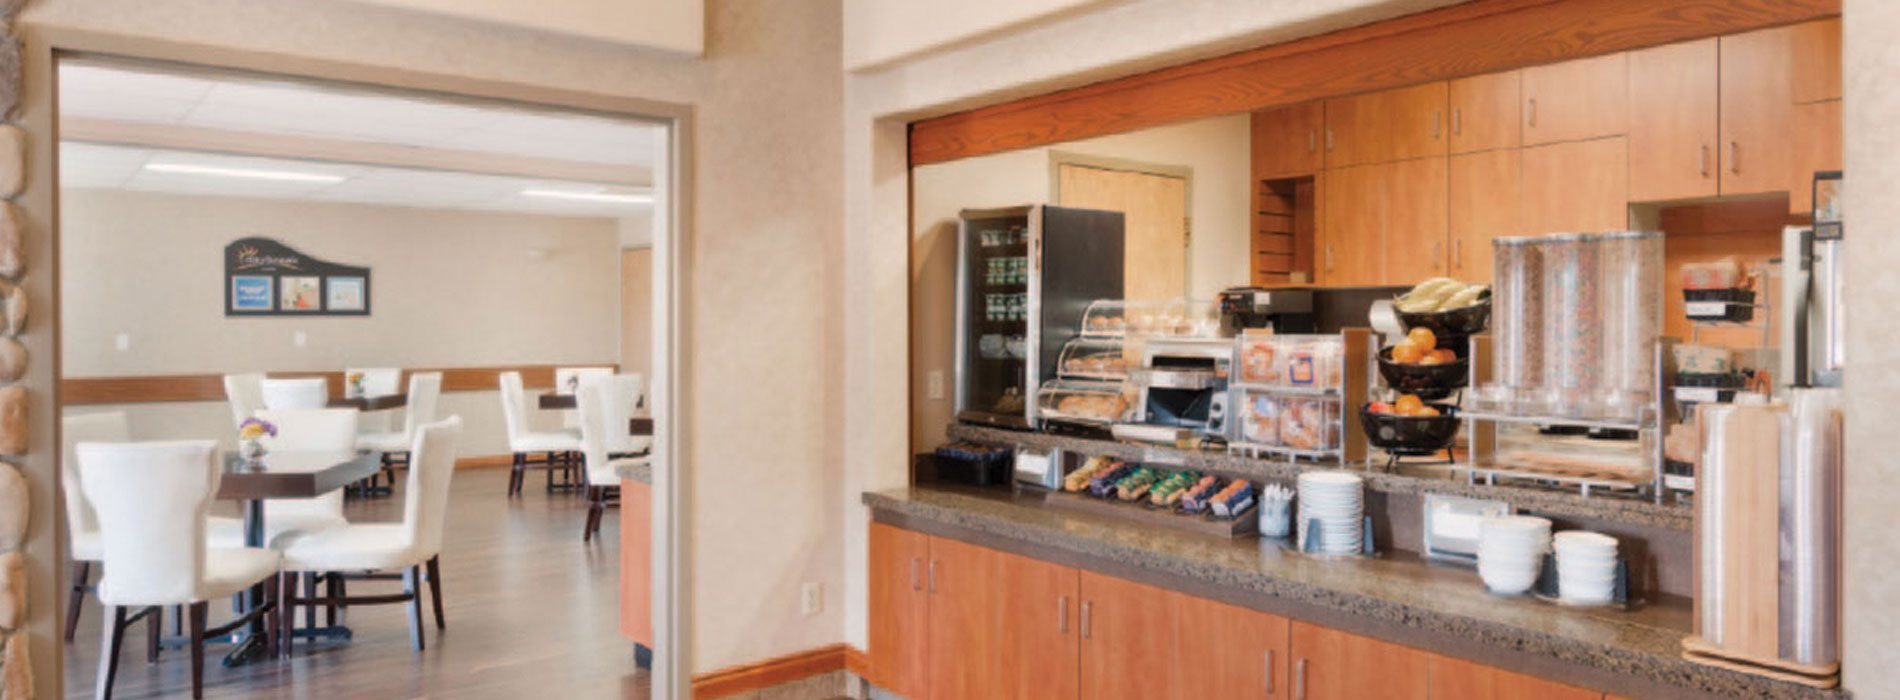 The Daybreak Café at Days Inn Red Deer showcases a long granite top counter with red ochre brown cabinetry.  Bowls of fruit, a mini refrigerator unit, stainless steel toaster, baked goods housed in display cases, and dining ware all sit atop the breakfast bar, which overlooks the entrance to the eating space populated by square tables and white upholstered Parsons chairs.